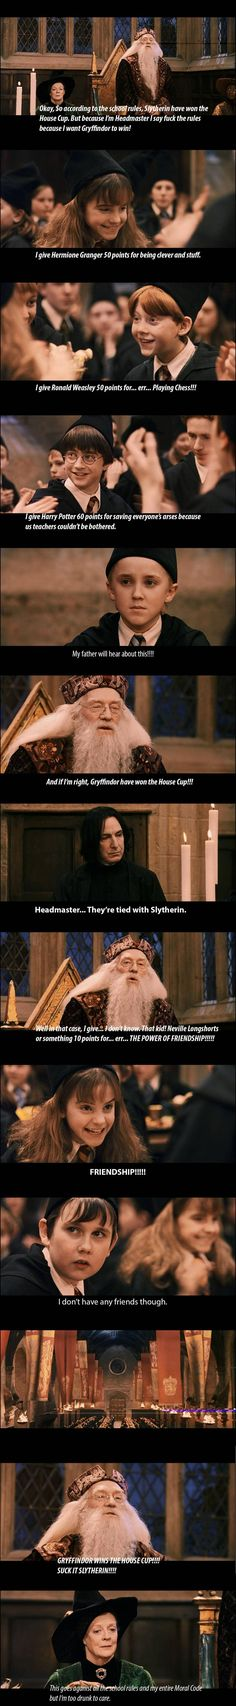 Screwing Slytherin since 1997 Dumbledore: Screwing Slytherin since 1997 bahaha! I always think how much bs the point system is in this!Dumbledore: Screwing Slytherin since 1997 bahaha! I always think how much bs the point system is in this! Harry Potter Puns, Harry Potter Universal, Harry Potter Sayings, Slytherin, Gellert Grindelwald, American Horror Story, Hobbit, Geeks, Fangirl